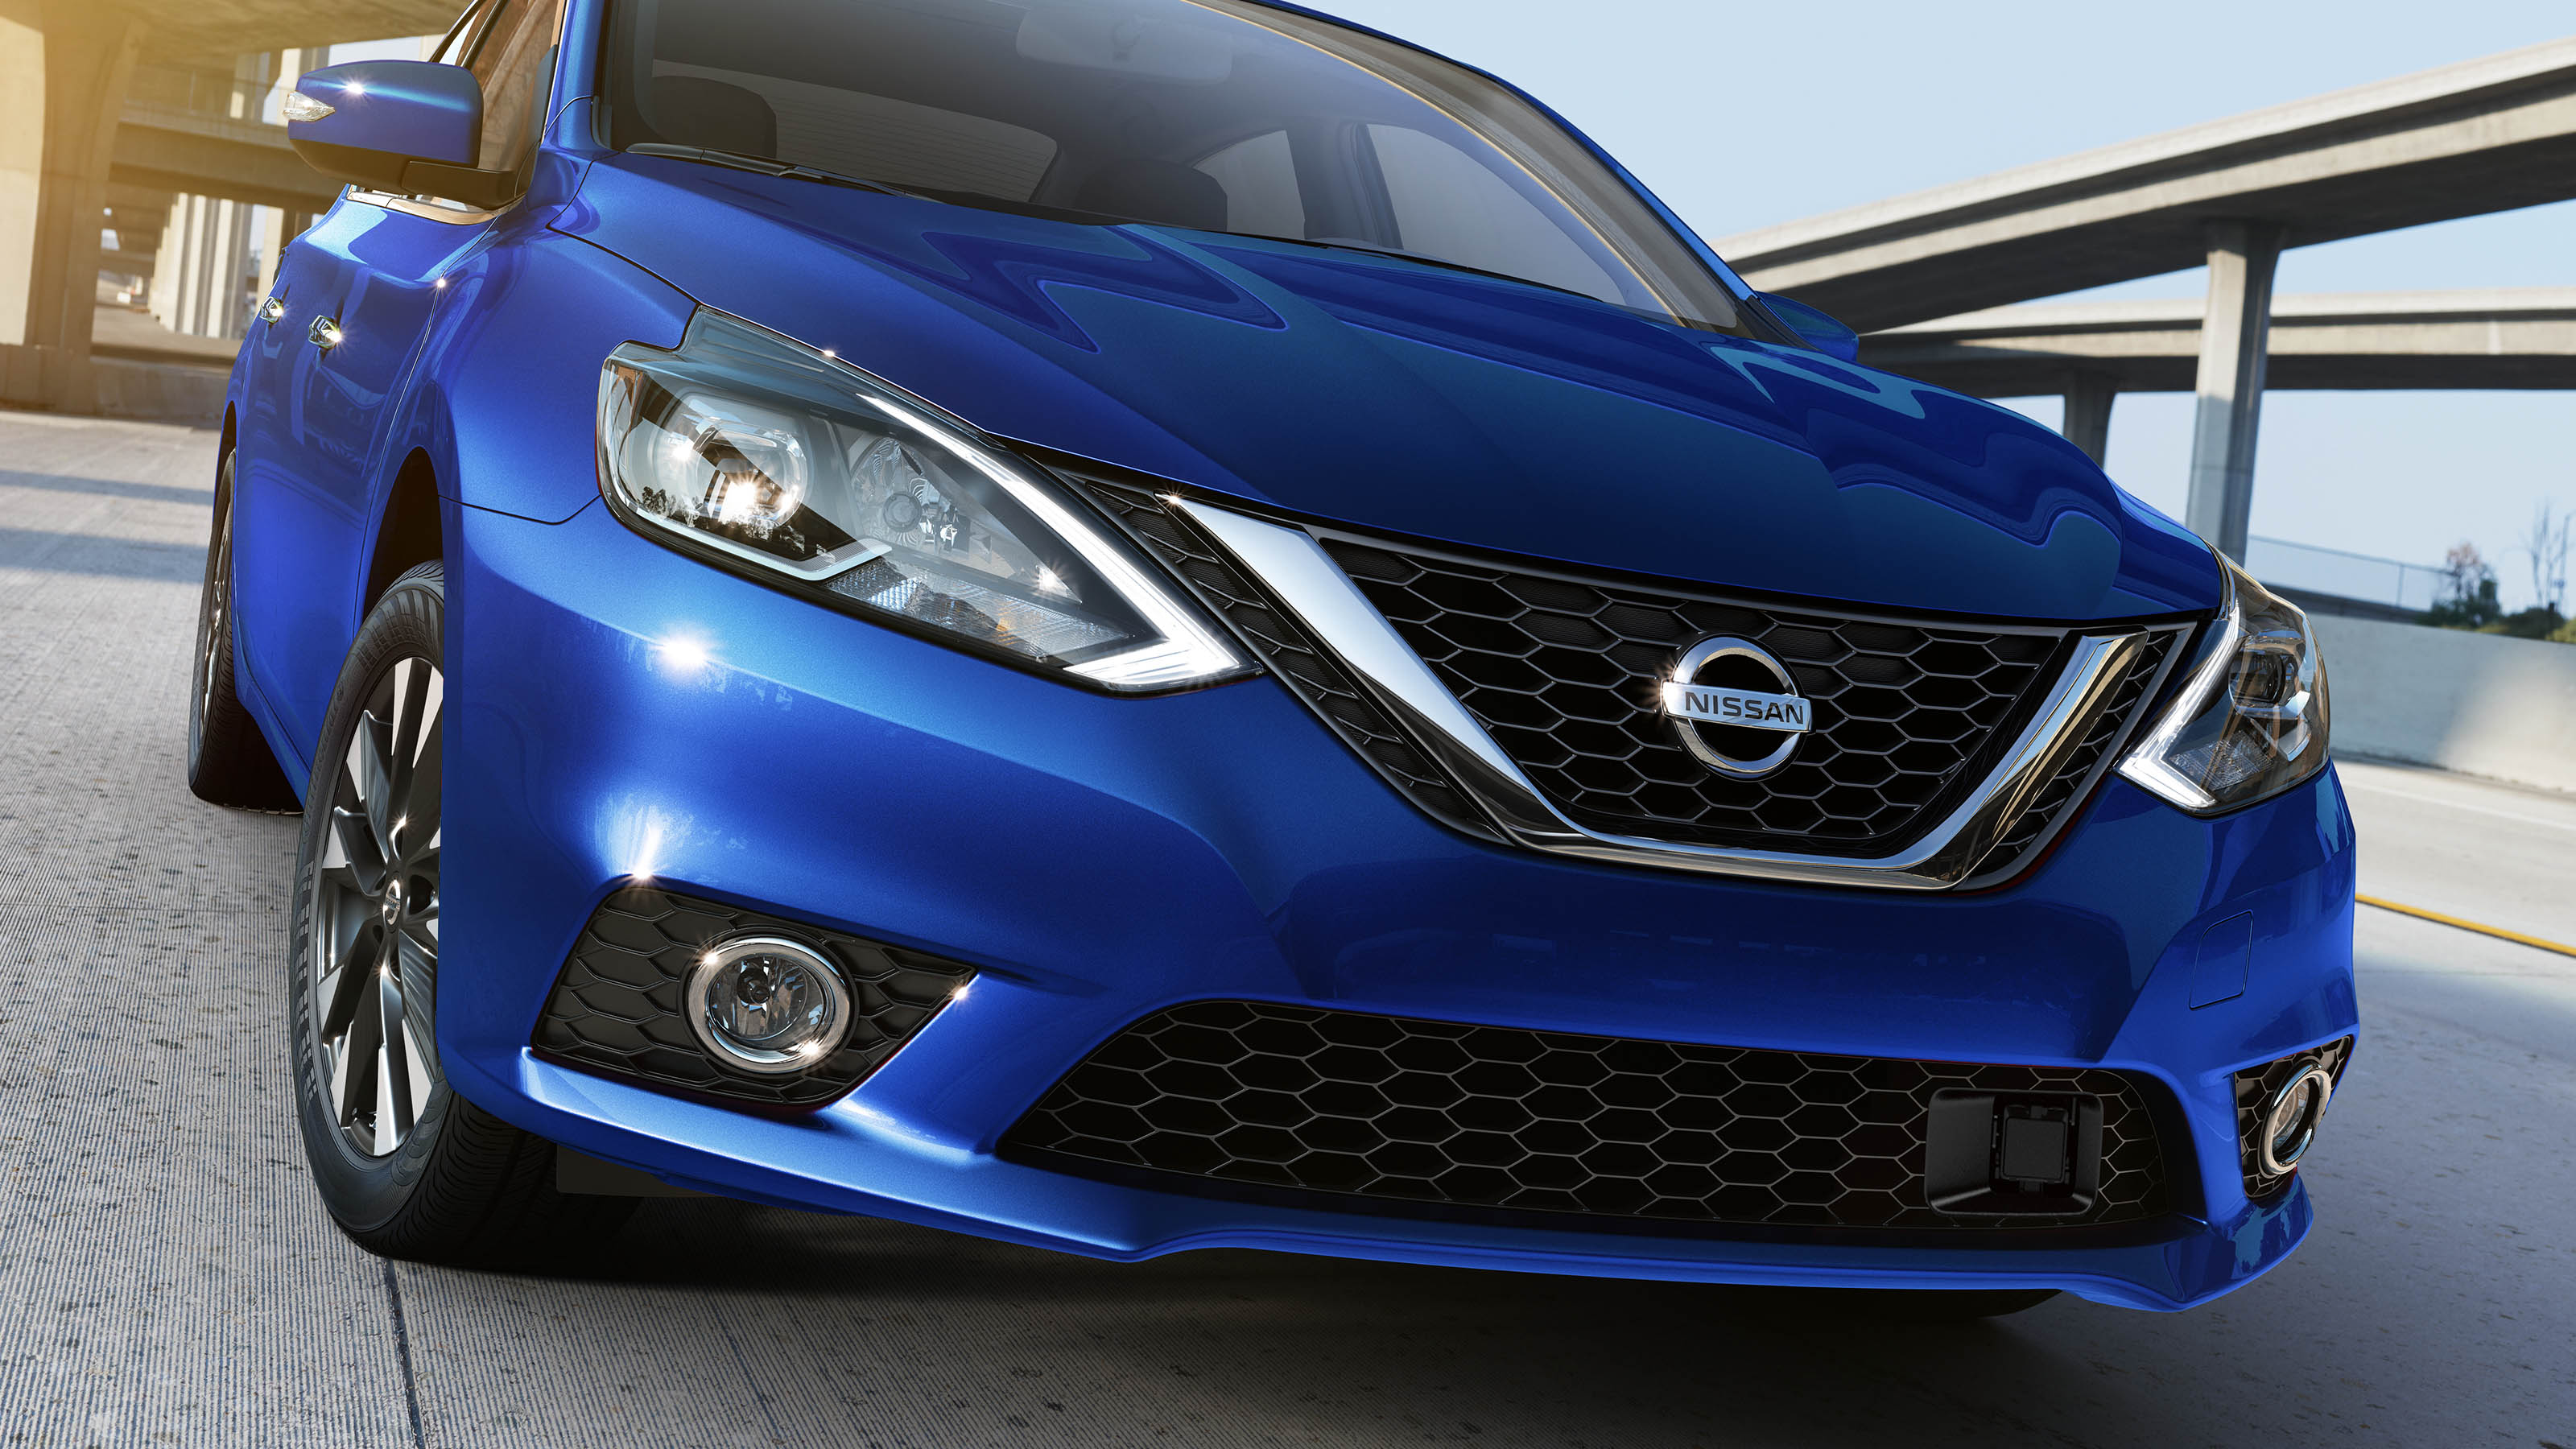 2019 Nissan Sentra Financing near Glendale Heights, IL